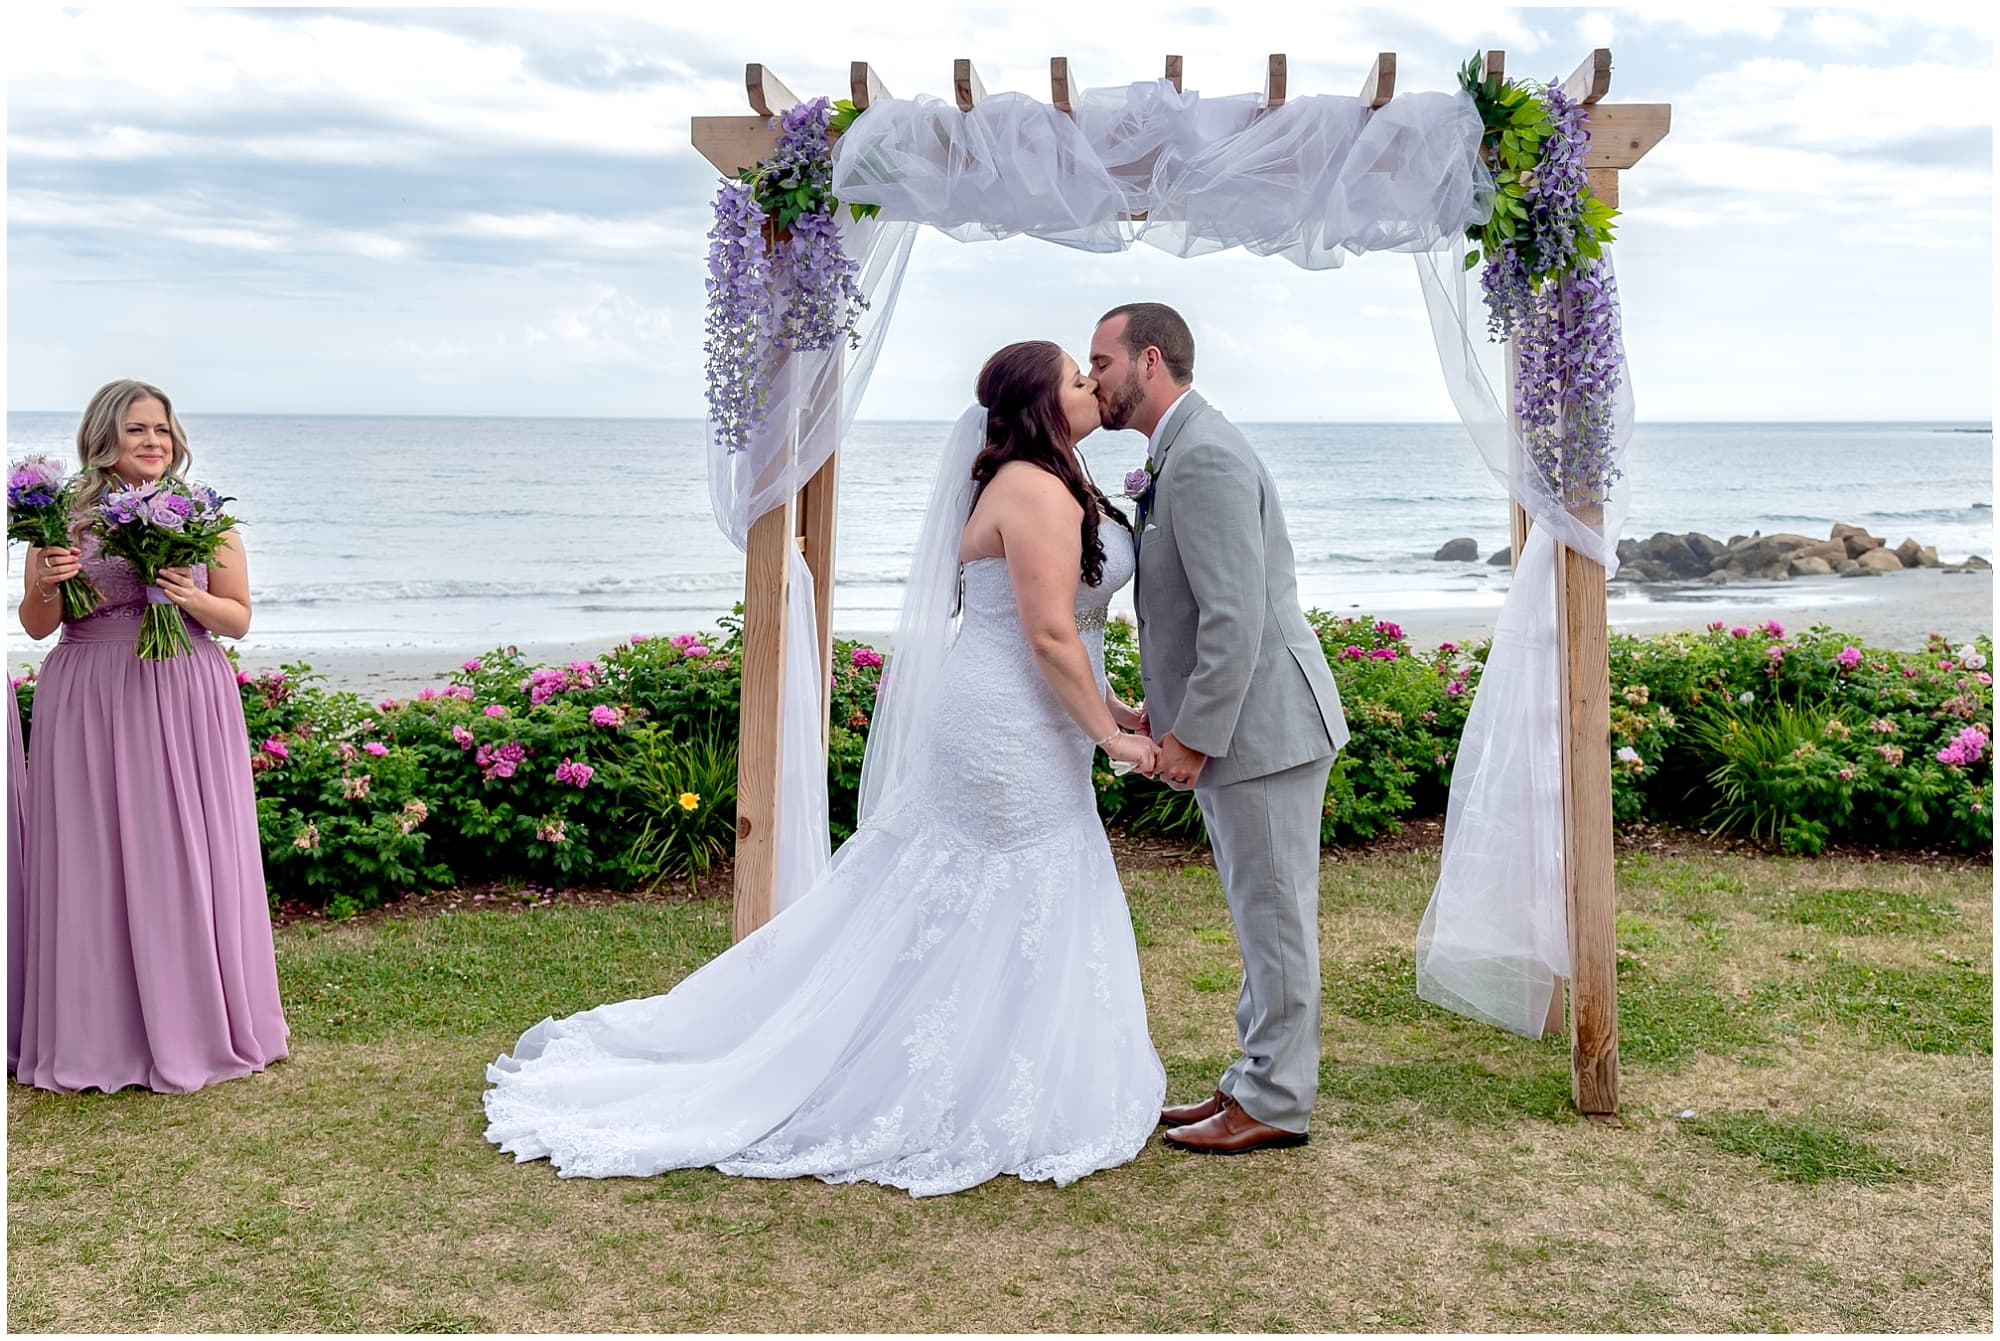 The bride and groom have their first kiss under a beautiful wedding arch during their ceremony at the White Point Beach Resort in Nova Scotia.